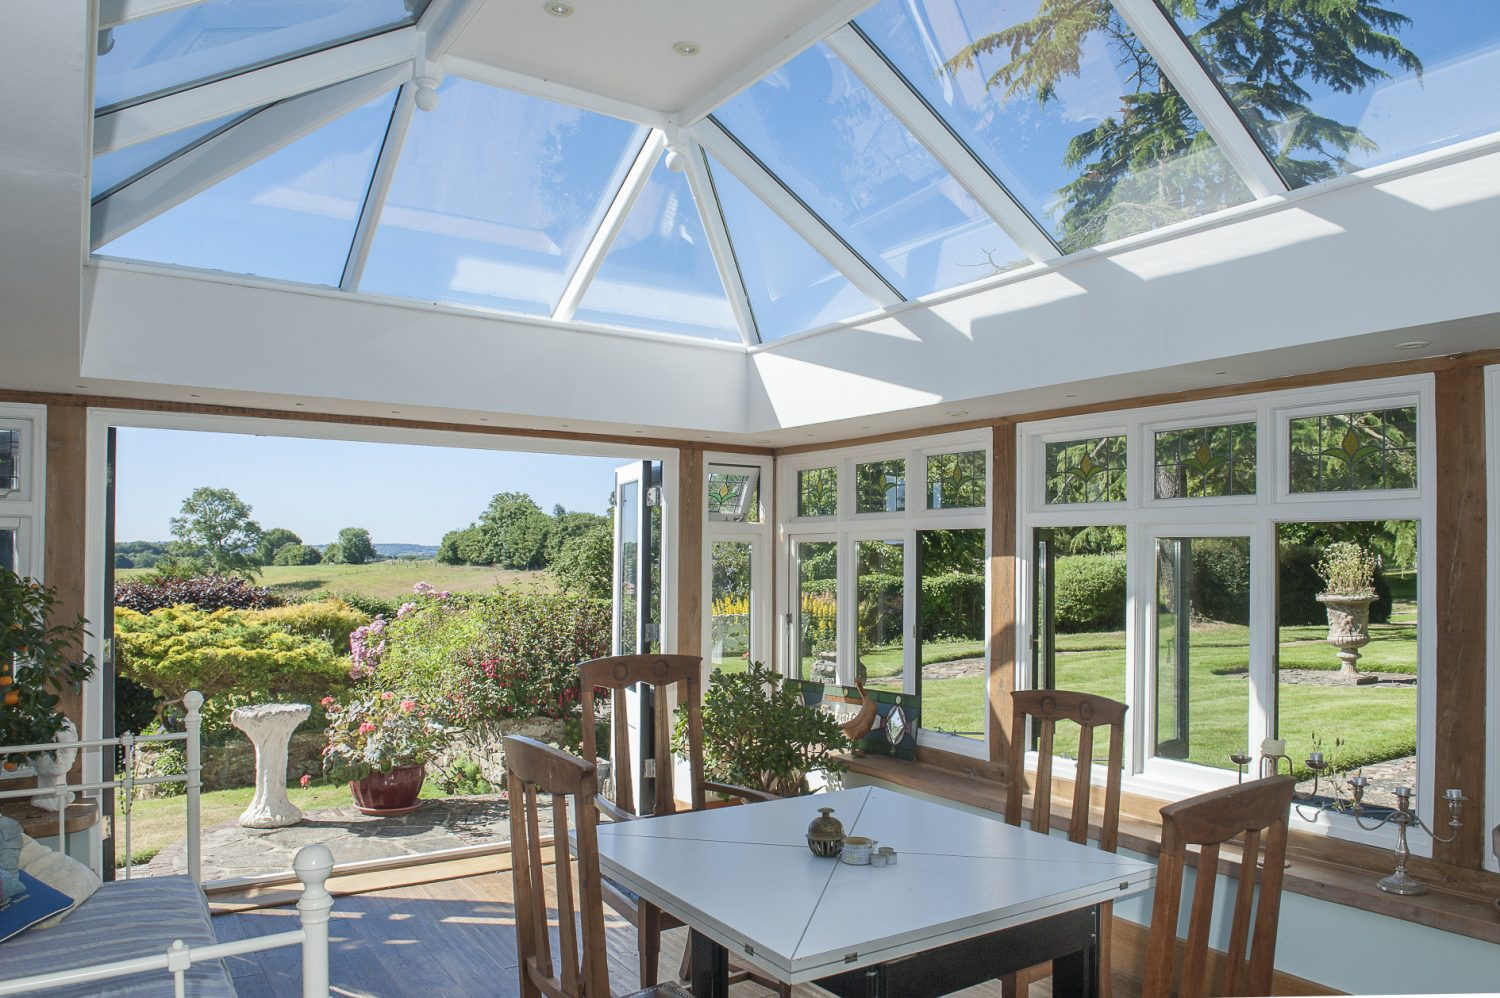 The view from the garden room